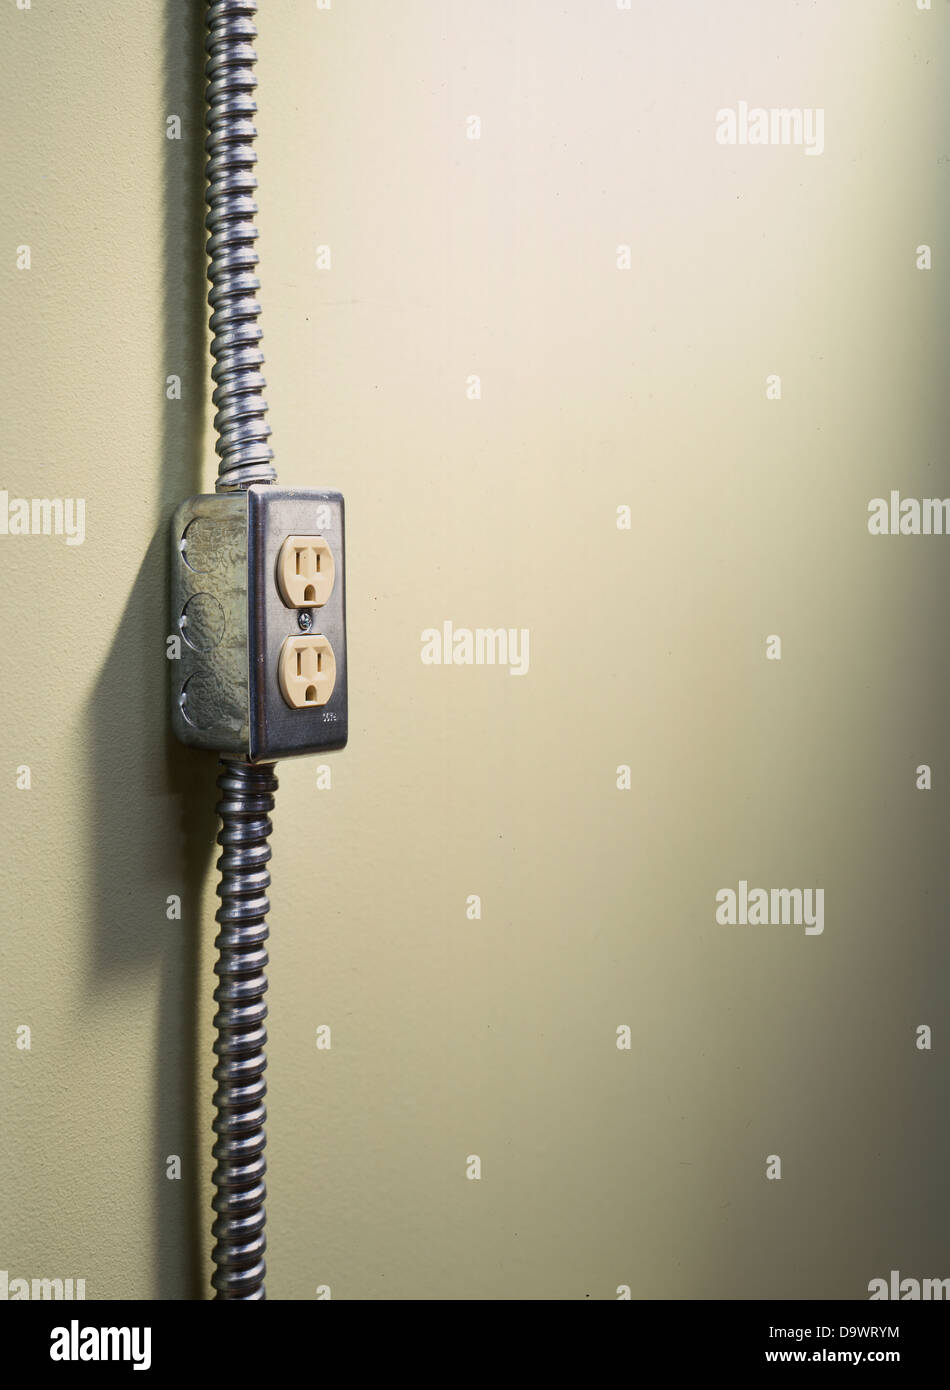 industrial outlet - Stock Image